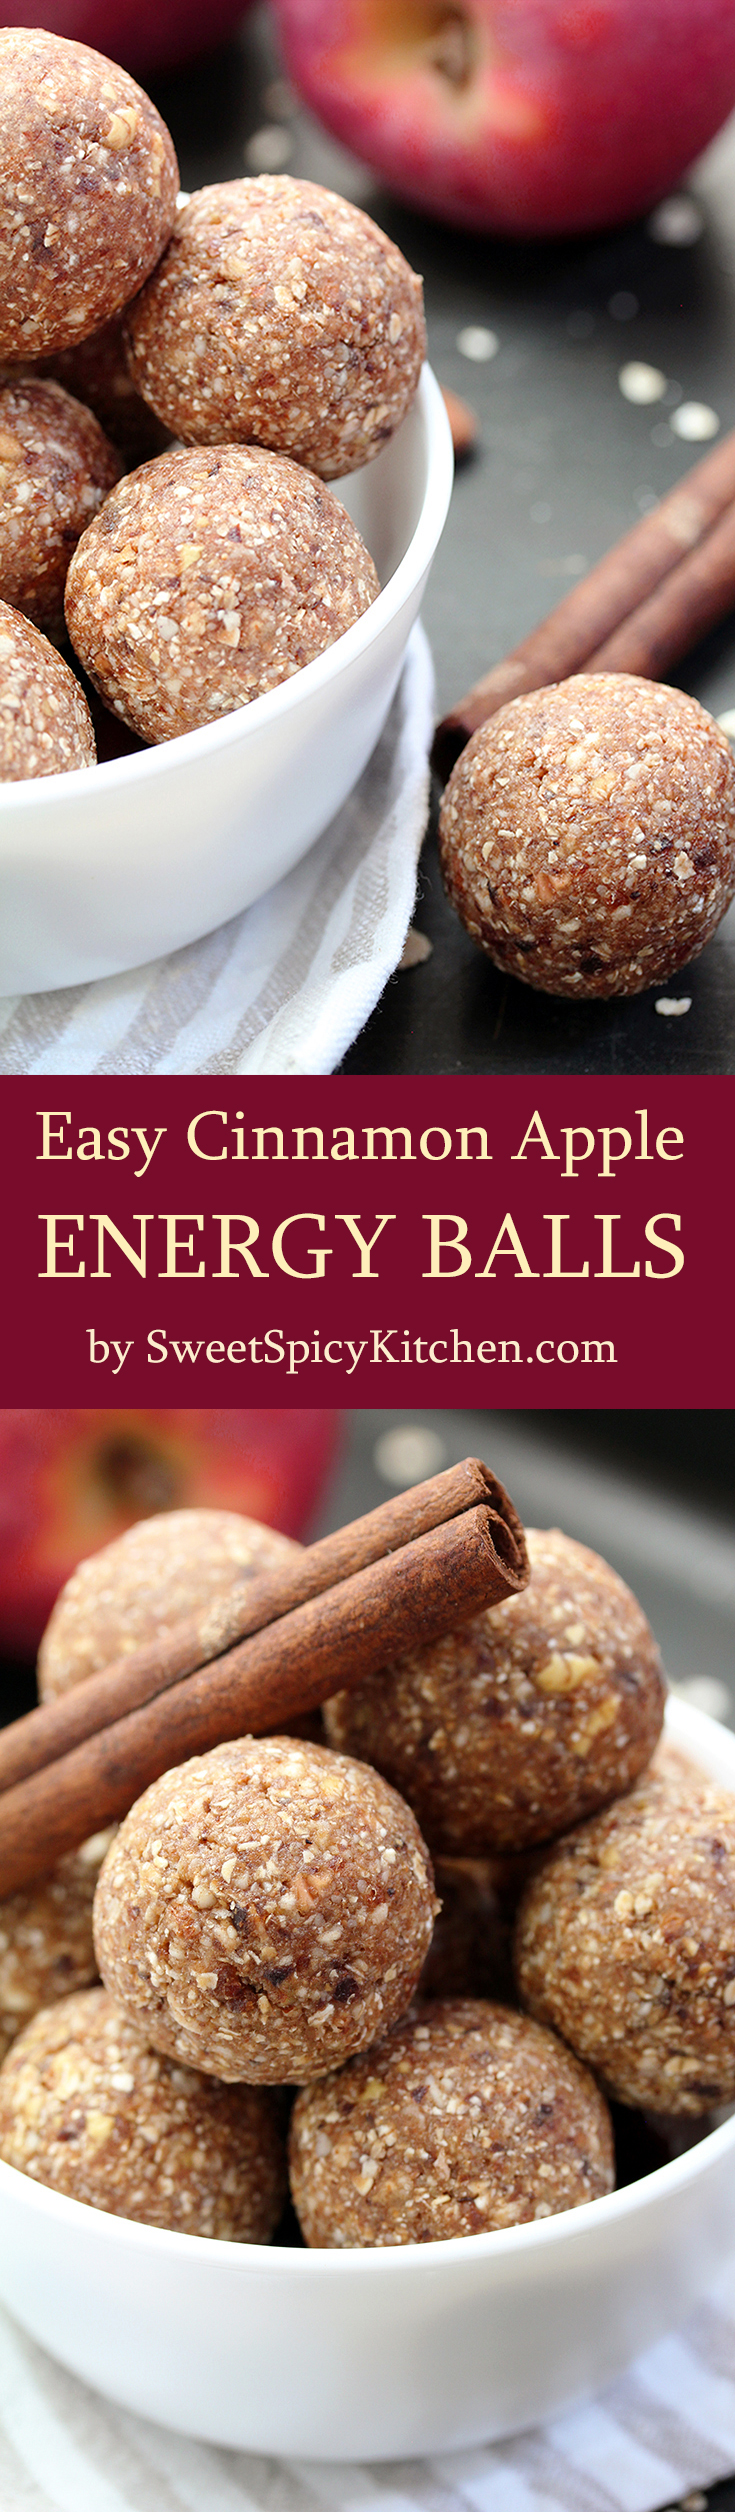 Easy Cinnamon Apple Energy Balls are light, delicious, nutritious, no bake balls, made of dried apples, dates, almonds, oat flakes, honey and cinnamon. Yummy!